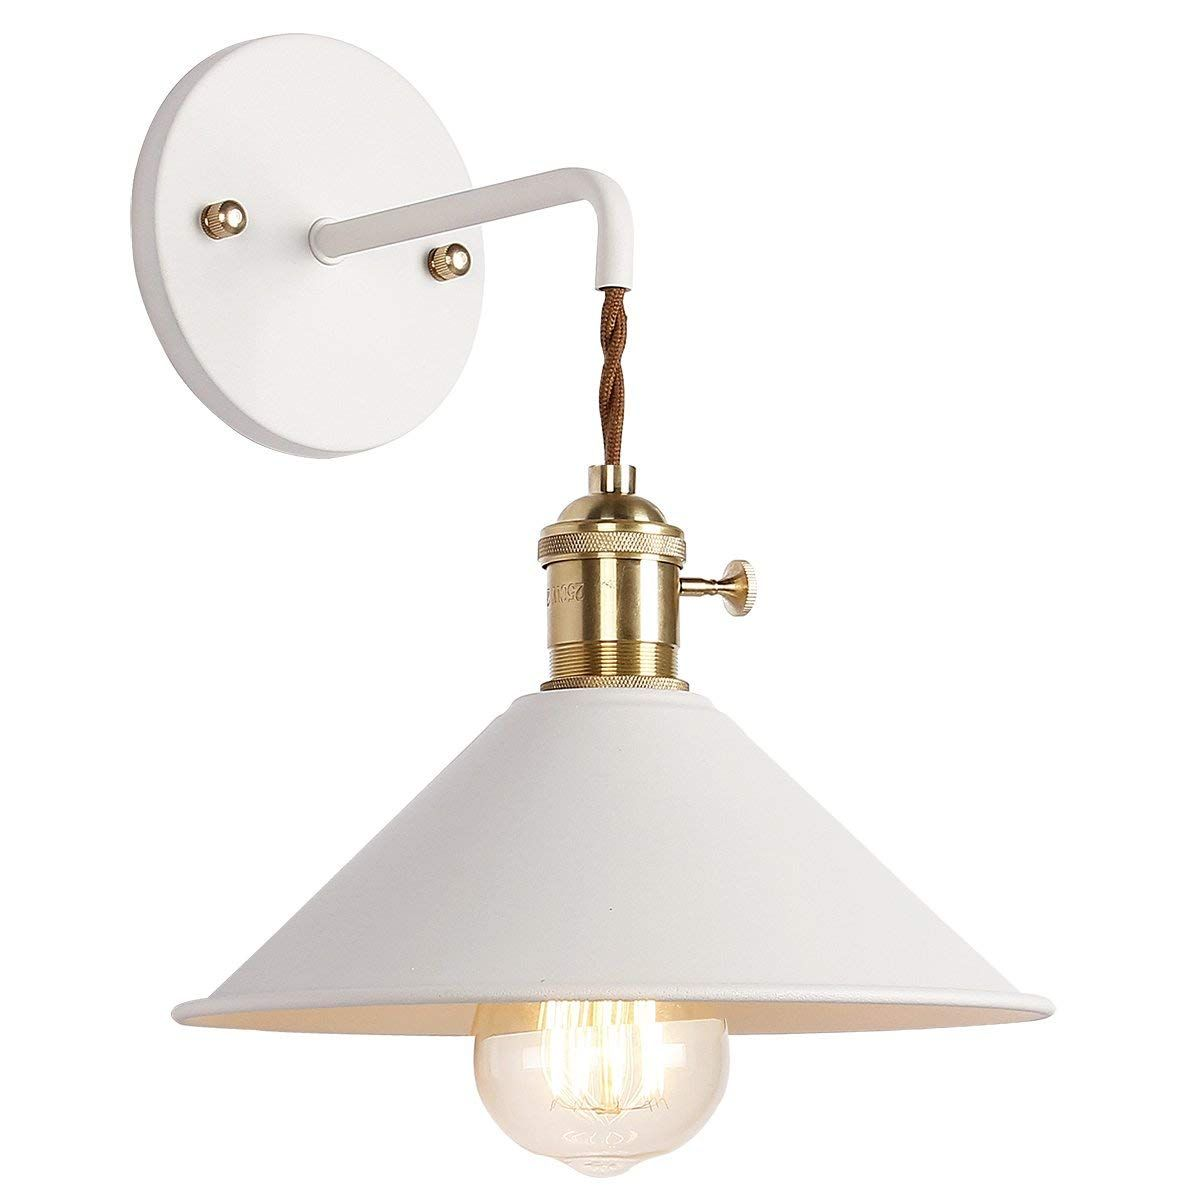 Iyoee Wall Sconce Lamps Lighting Fixture With On Off Switch White